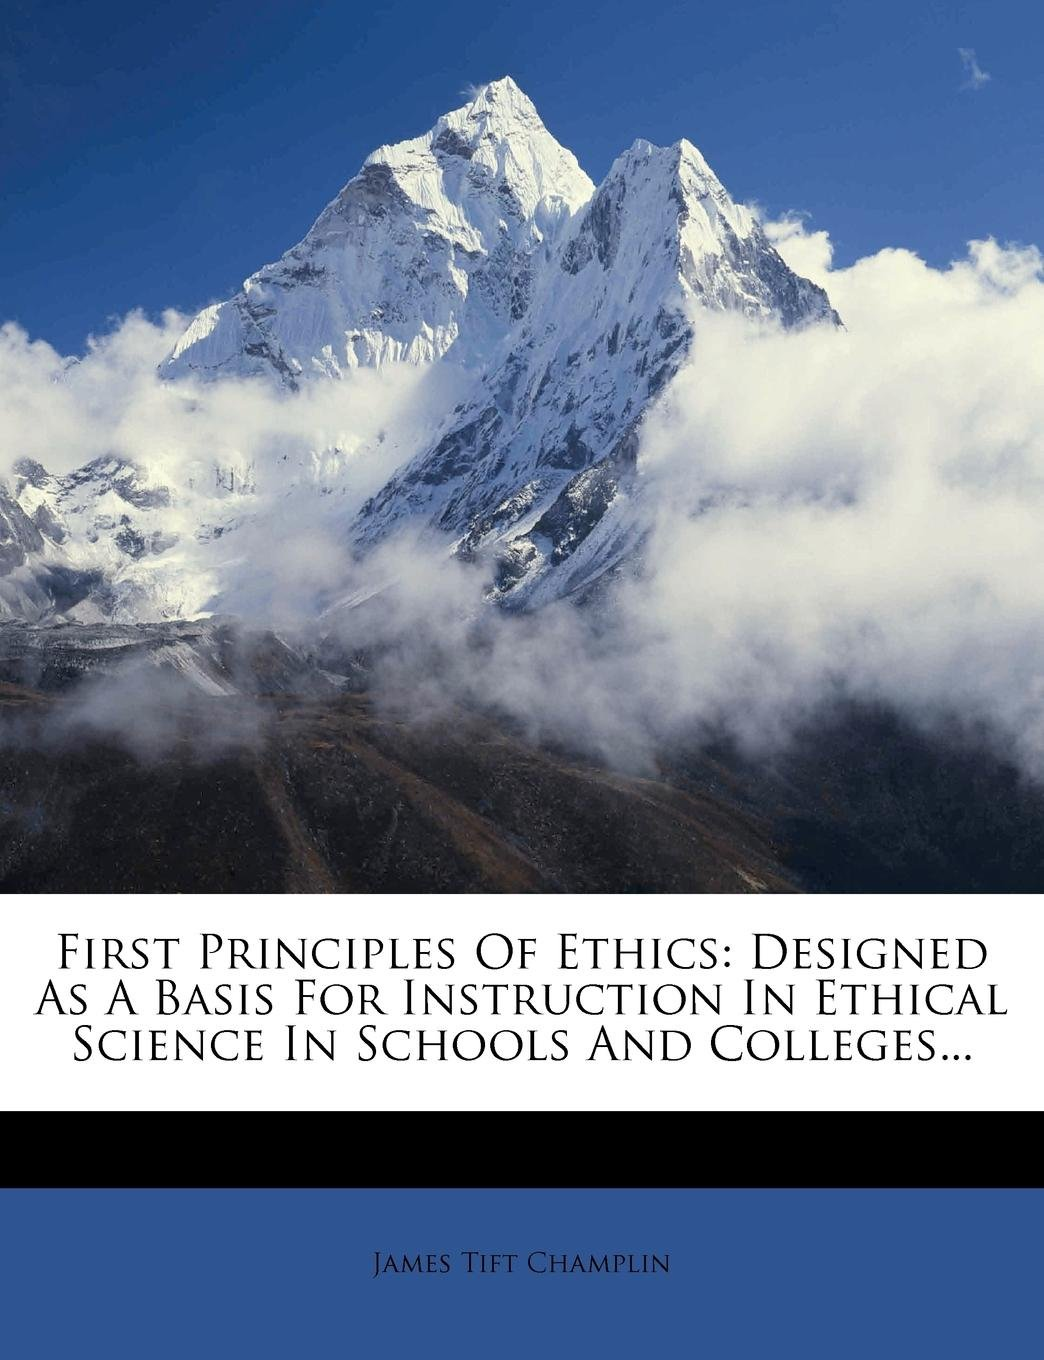 First Principles Of Ethics: Designed As A Basis For Instruction In Ethical Science In Schools And Colleges... pdf